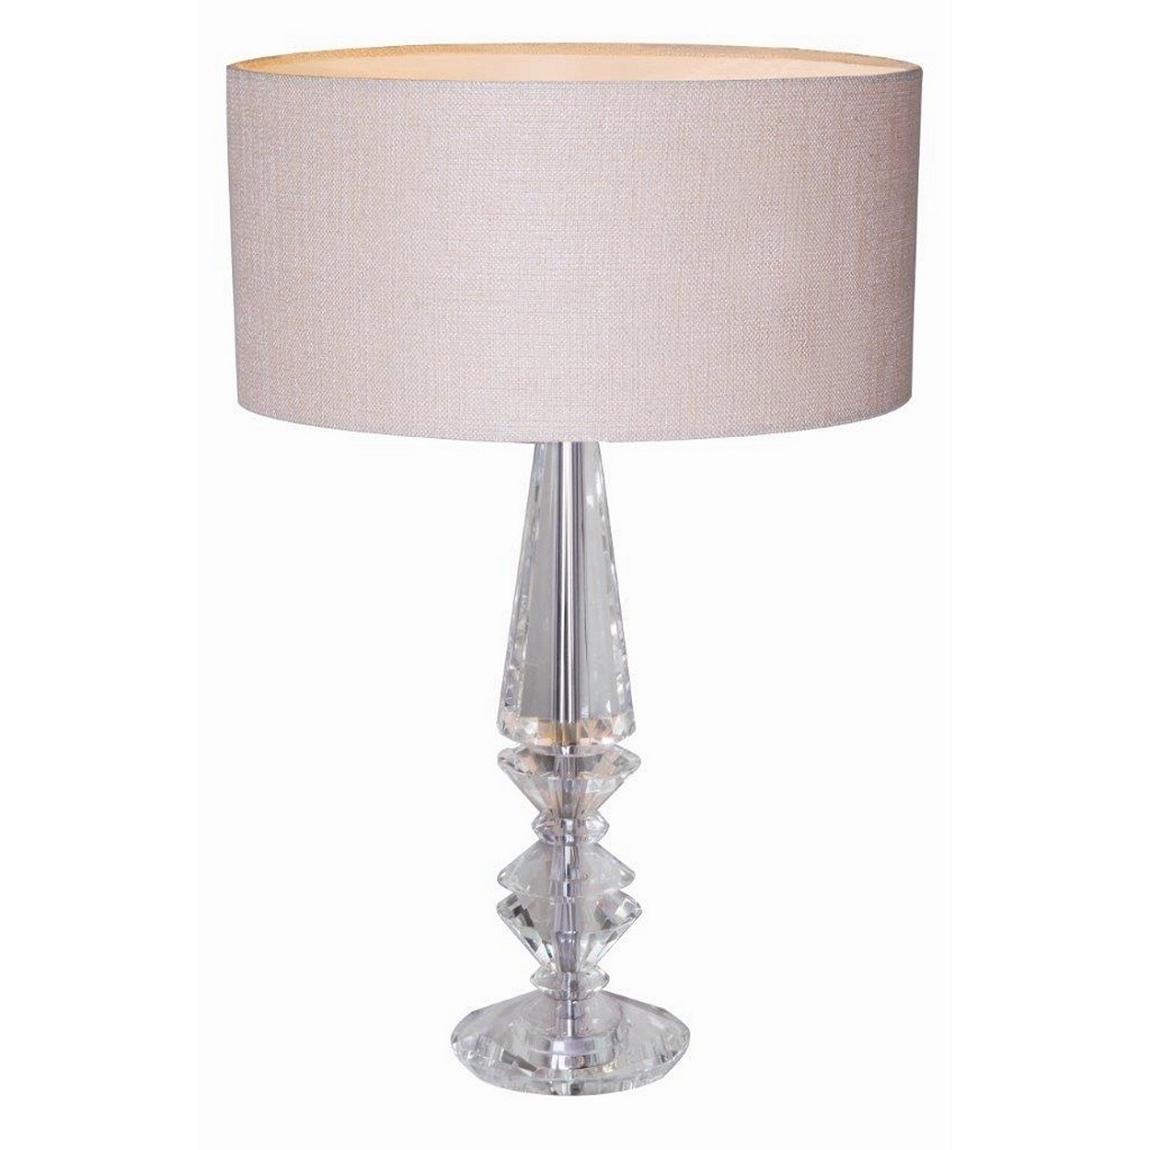 Newest Gallery Debenhams Table Lamps – Badotcom For Debenhams Table Lamps For Living Room (Gallery 4 of 20)